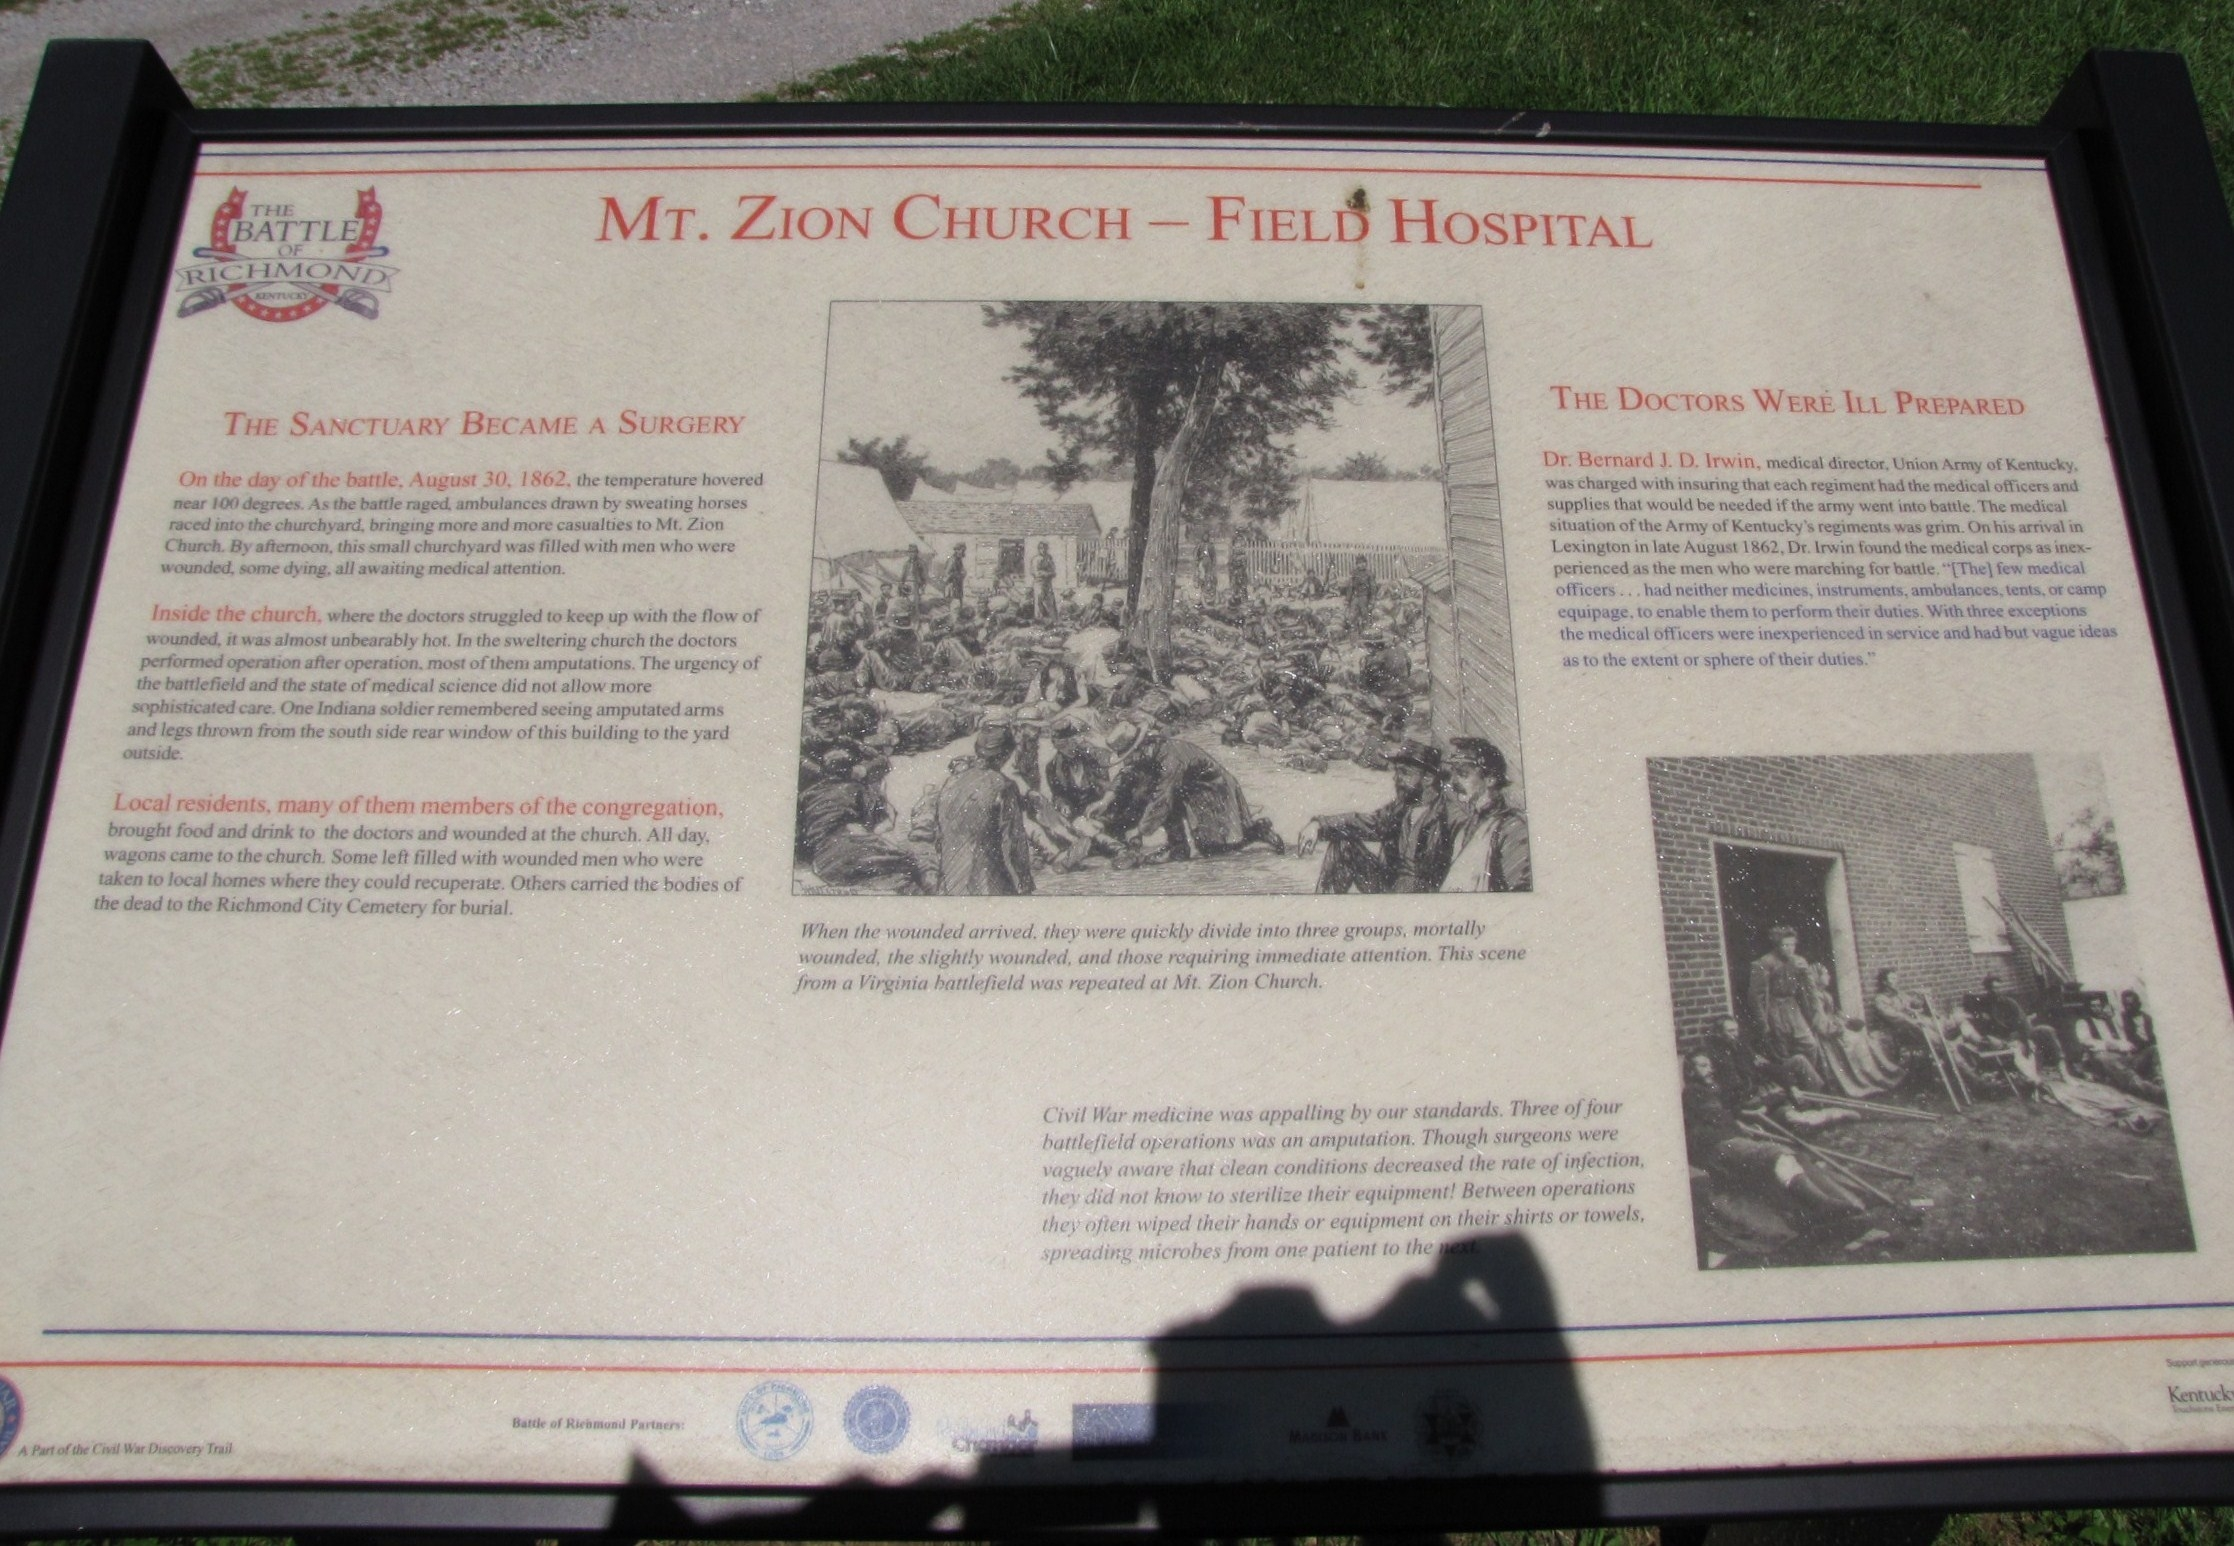 Mt. Zion Church - Field Hospital Marker